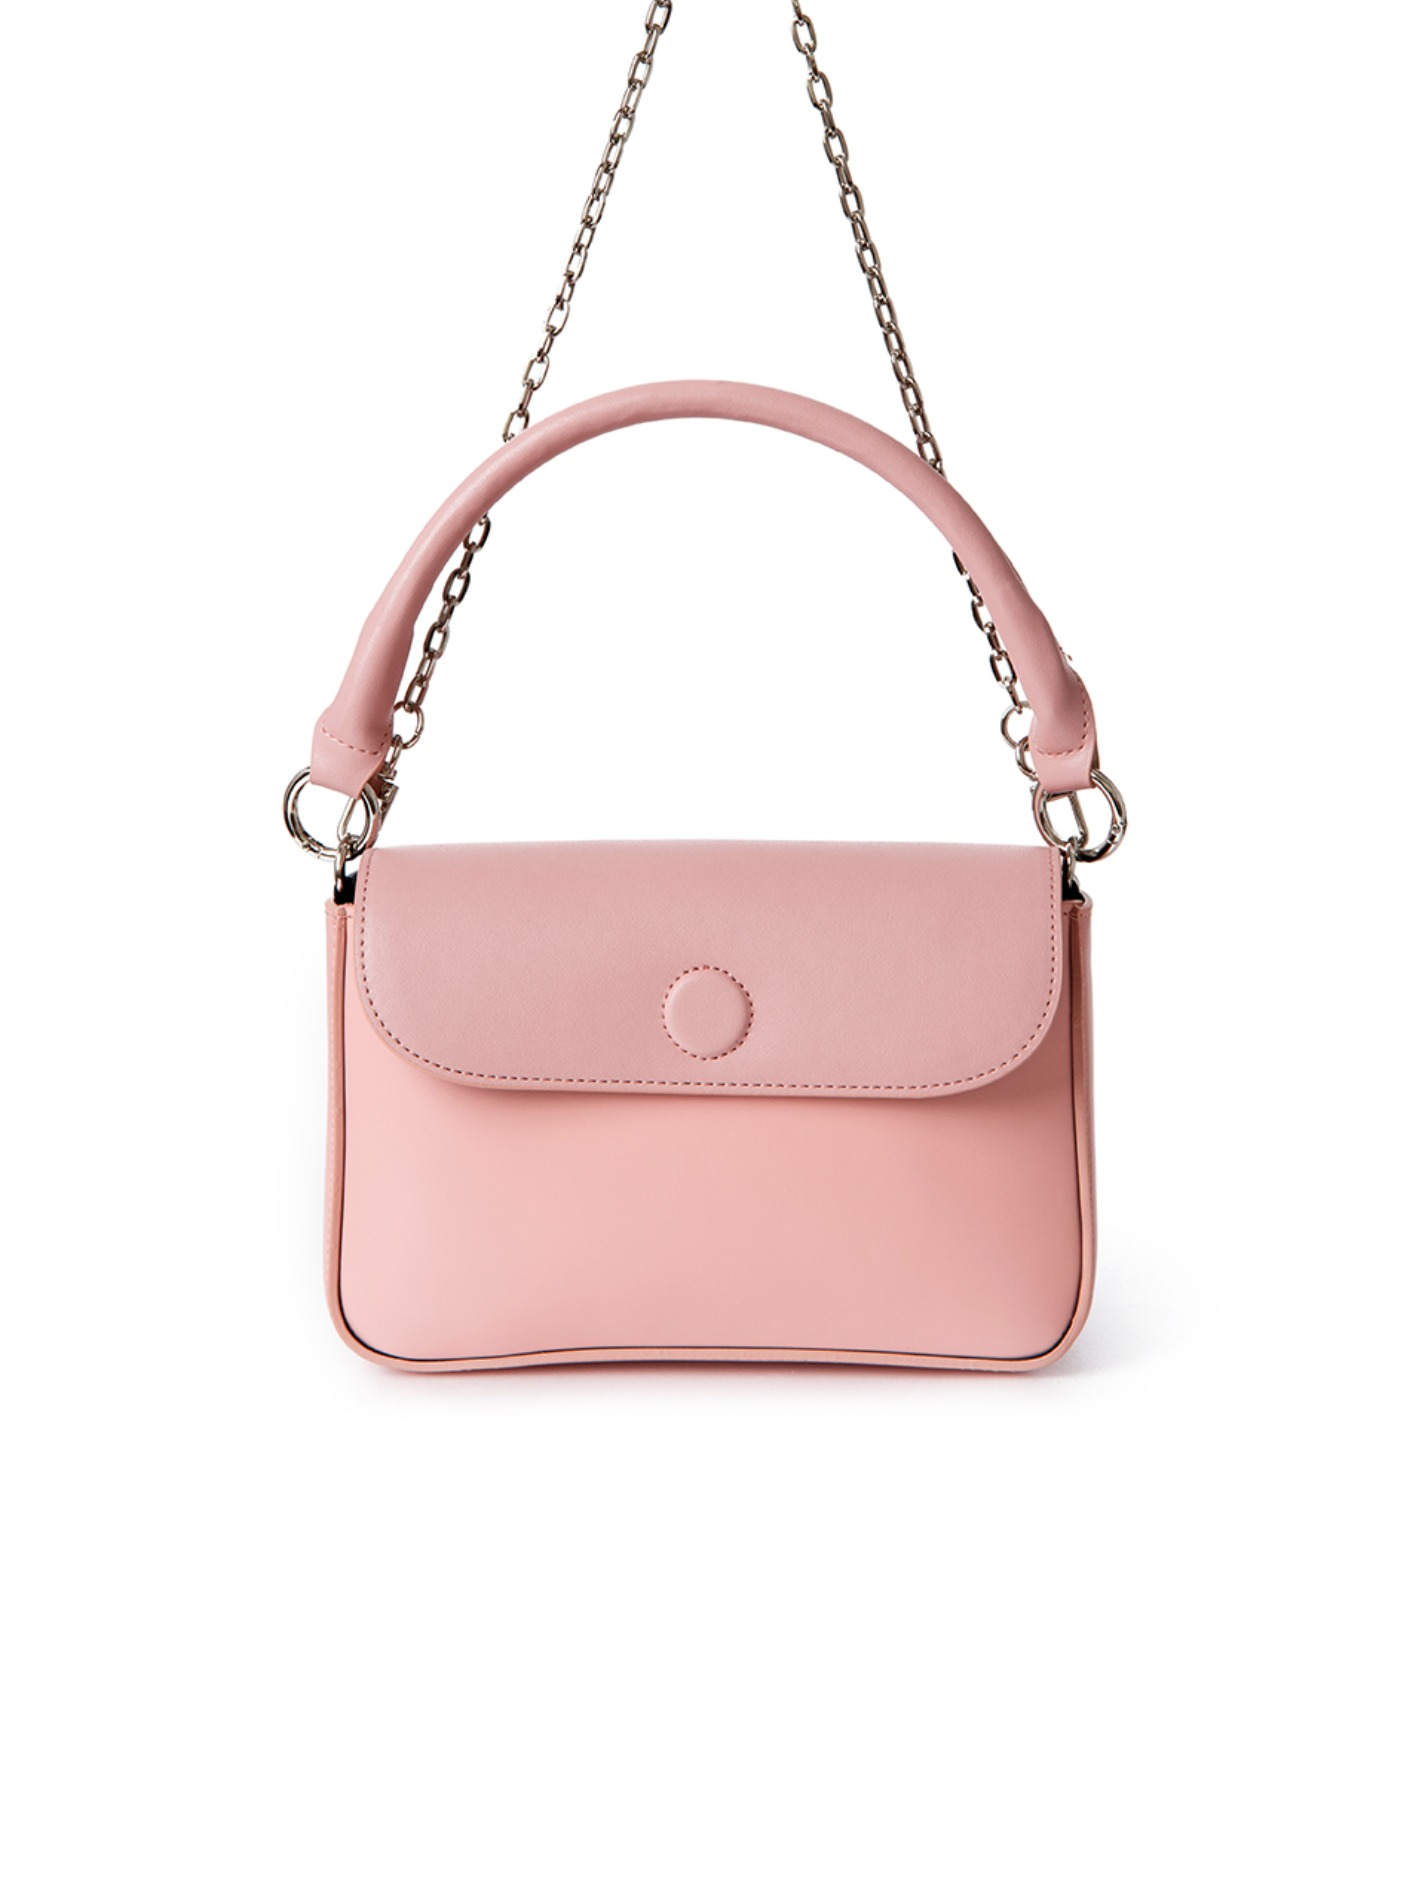 [by Atelier] NANO ROSY BAG _ PINK